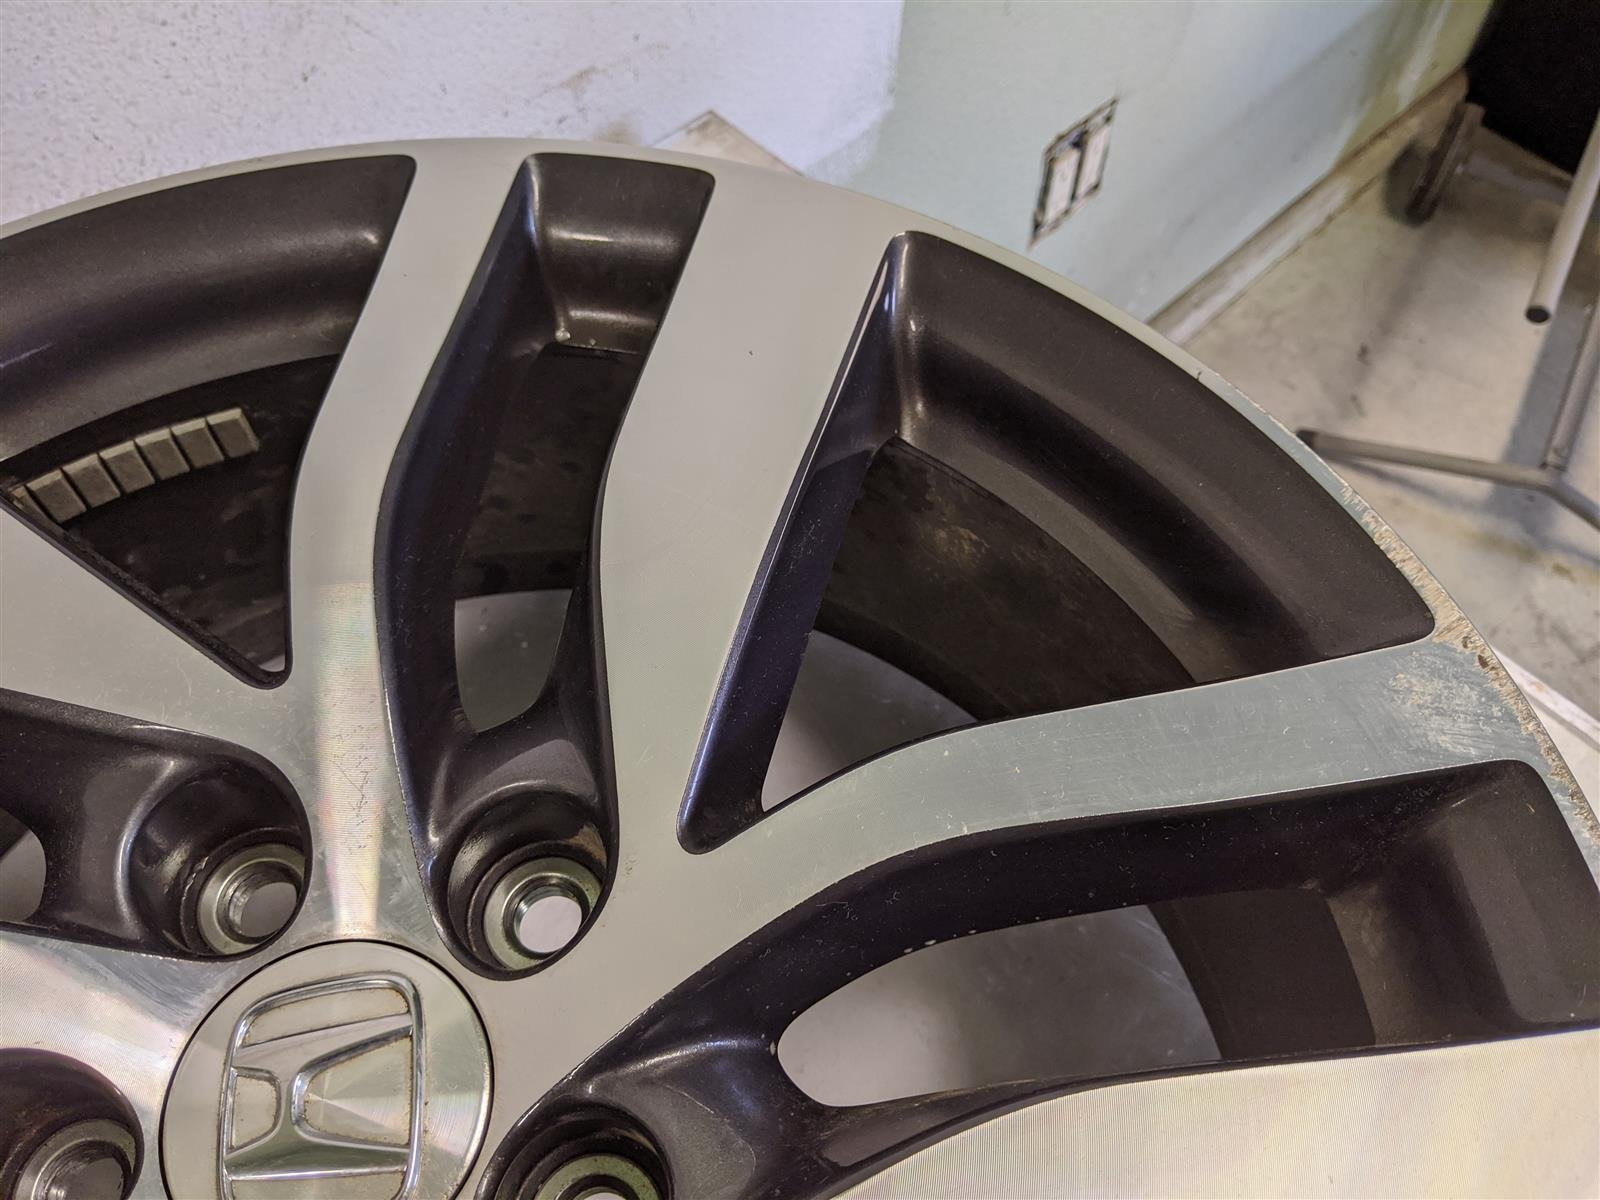 2018 Honda Pilot 20x8 Alloy Rim, Used Scratches Replacement